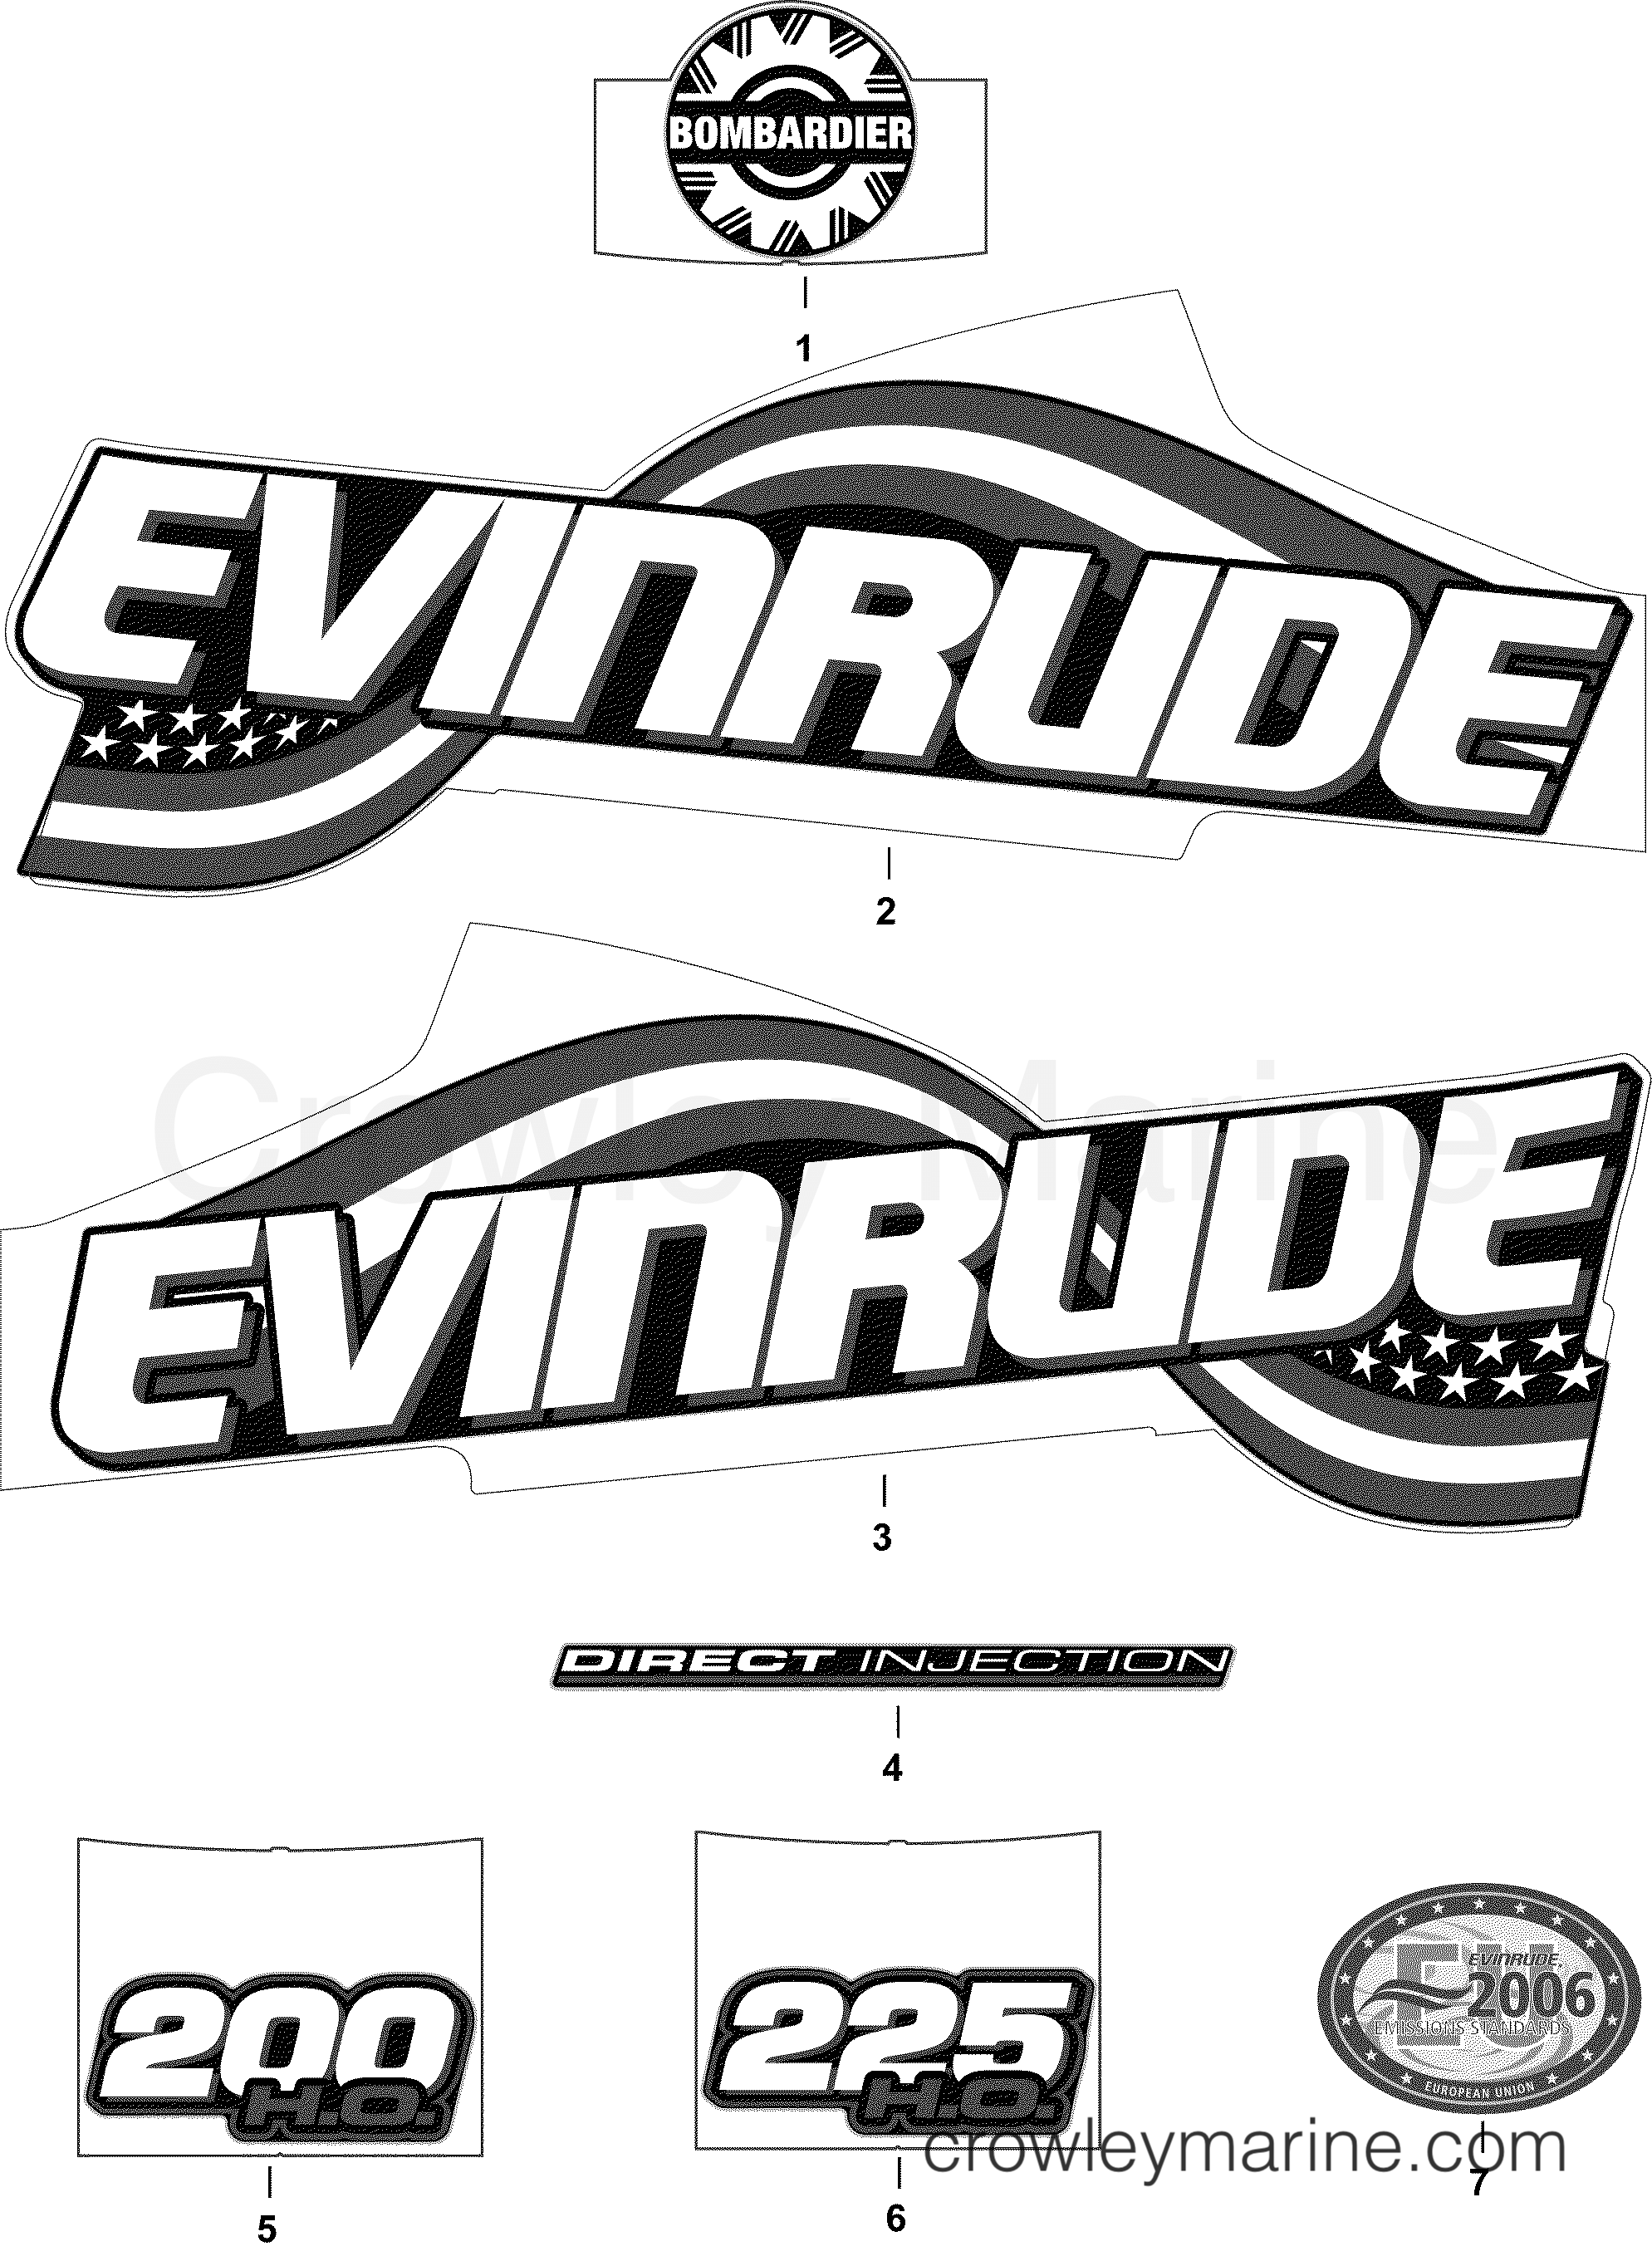 2004 Evinrude Outboards 200 - E200FHLSRC DECALS - FHL, FHX MODELS section